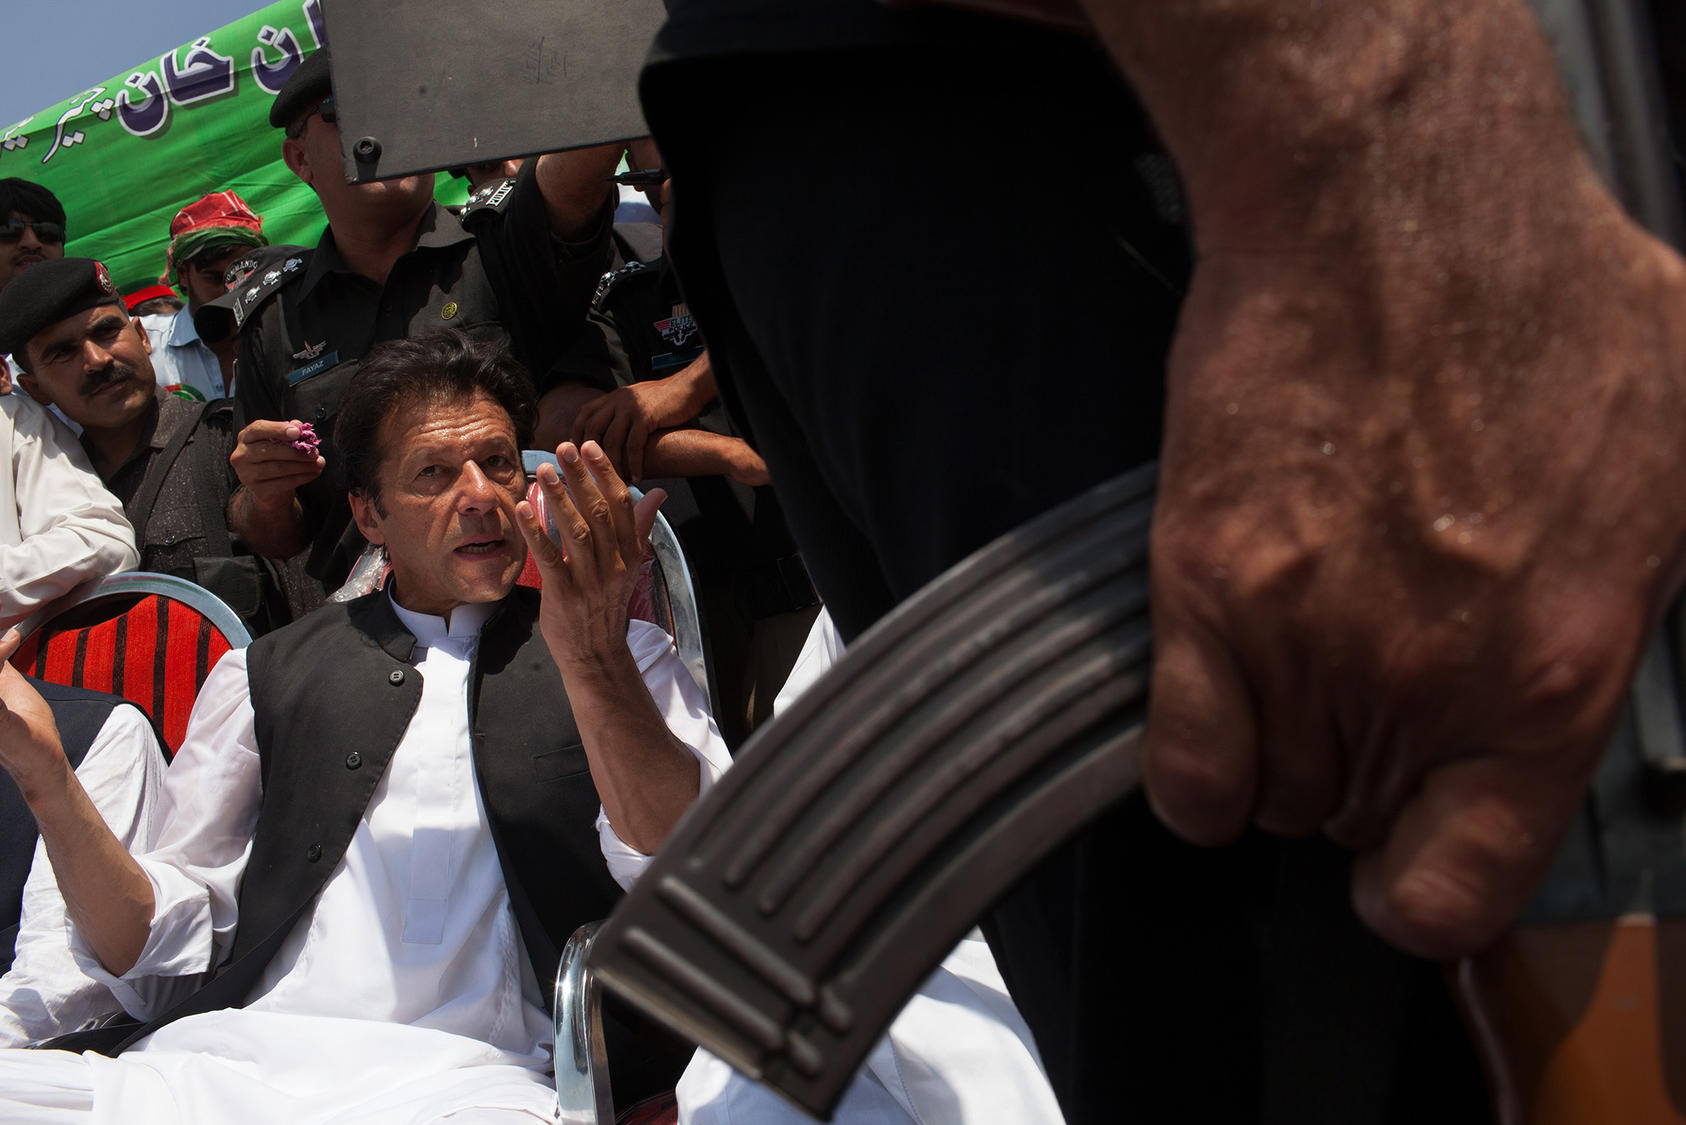 Prime Minister Imran Khan during a campaign rally for Pakistan's 2013 parliamentary elections in the Swabi District of Pakistan. (Tyler Hicks/The New York Times)